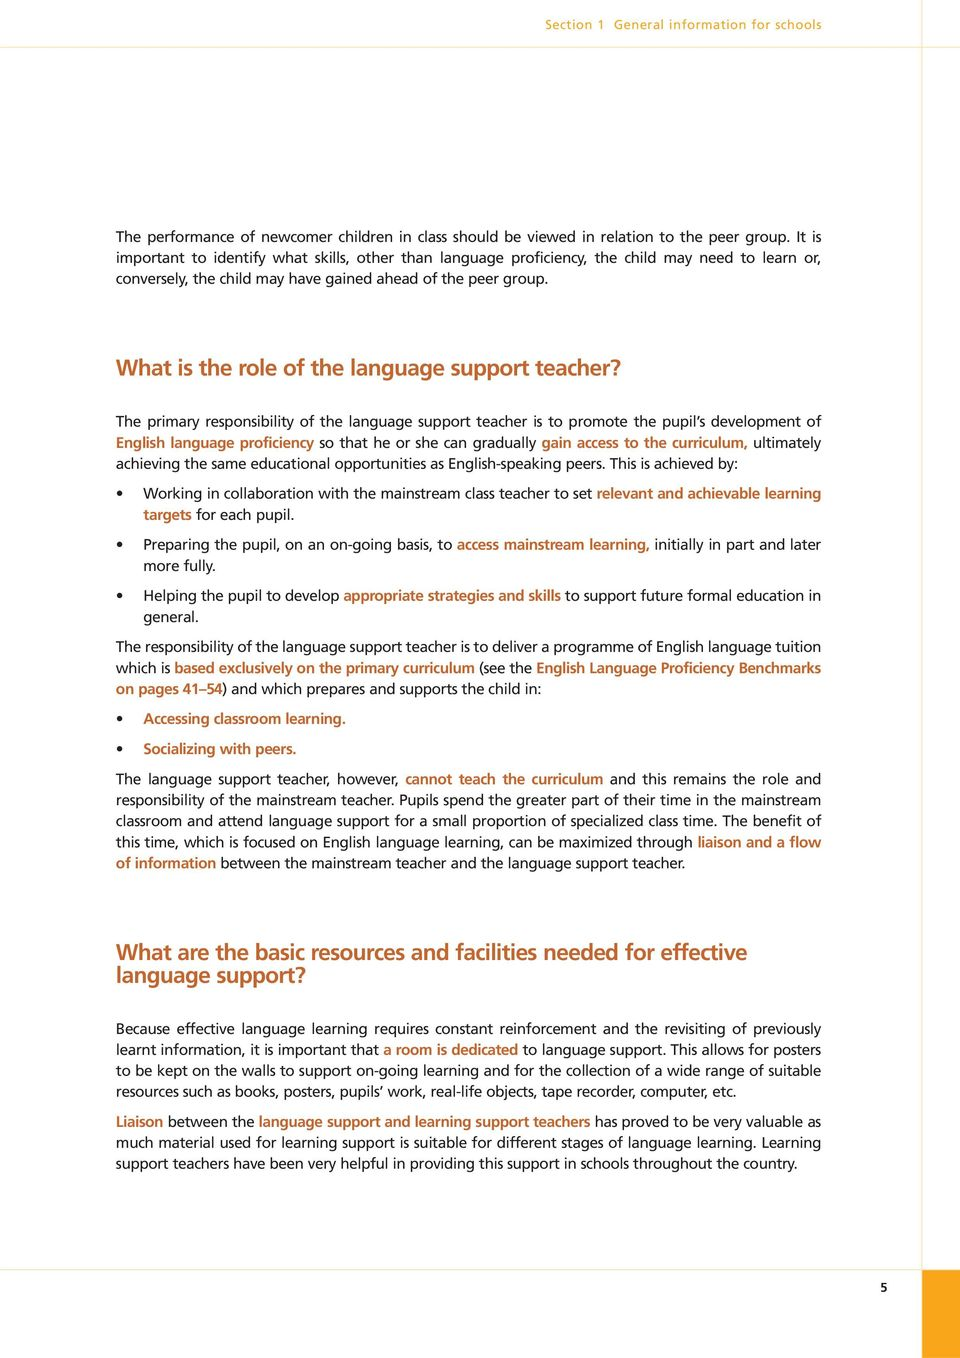 What is the role of the language support teacher?